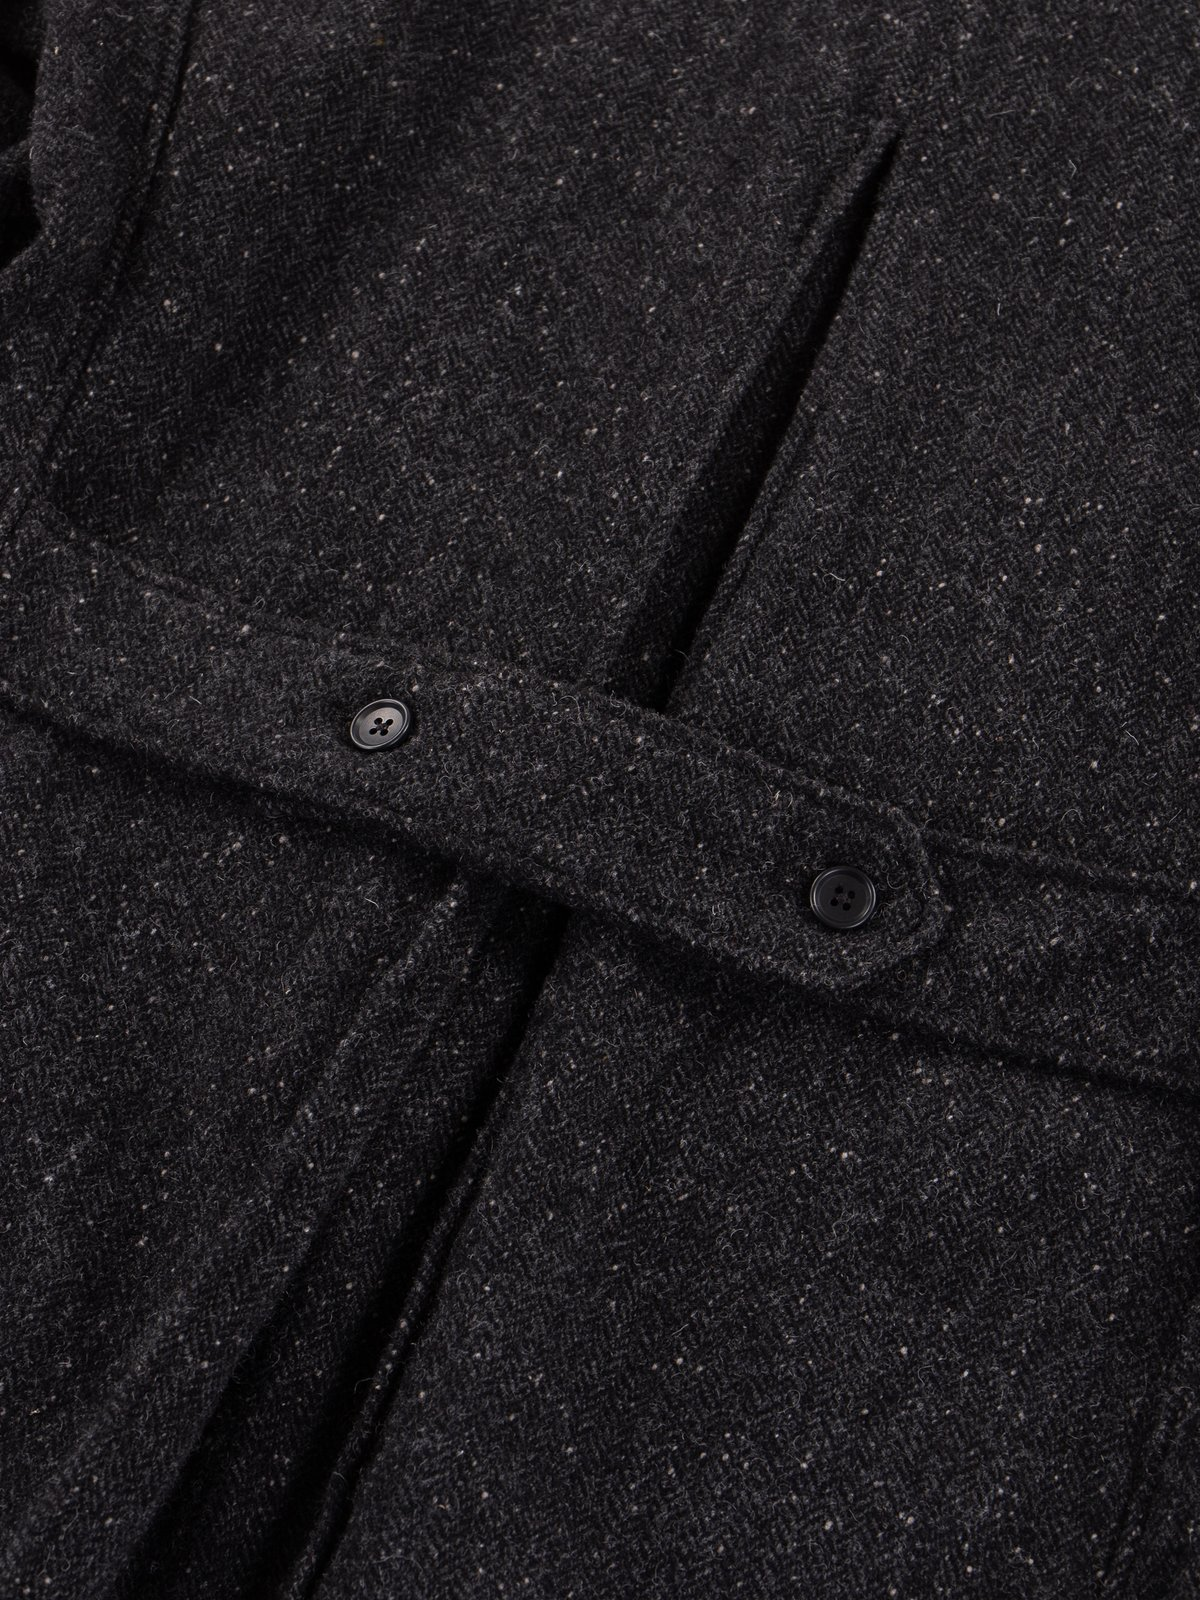 Charcoal HB Tweed Grim Jacket - Image 10